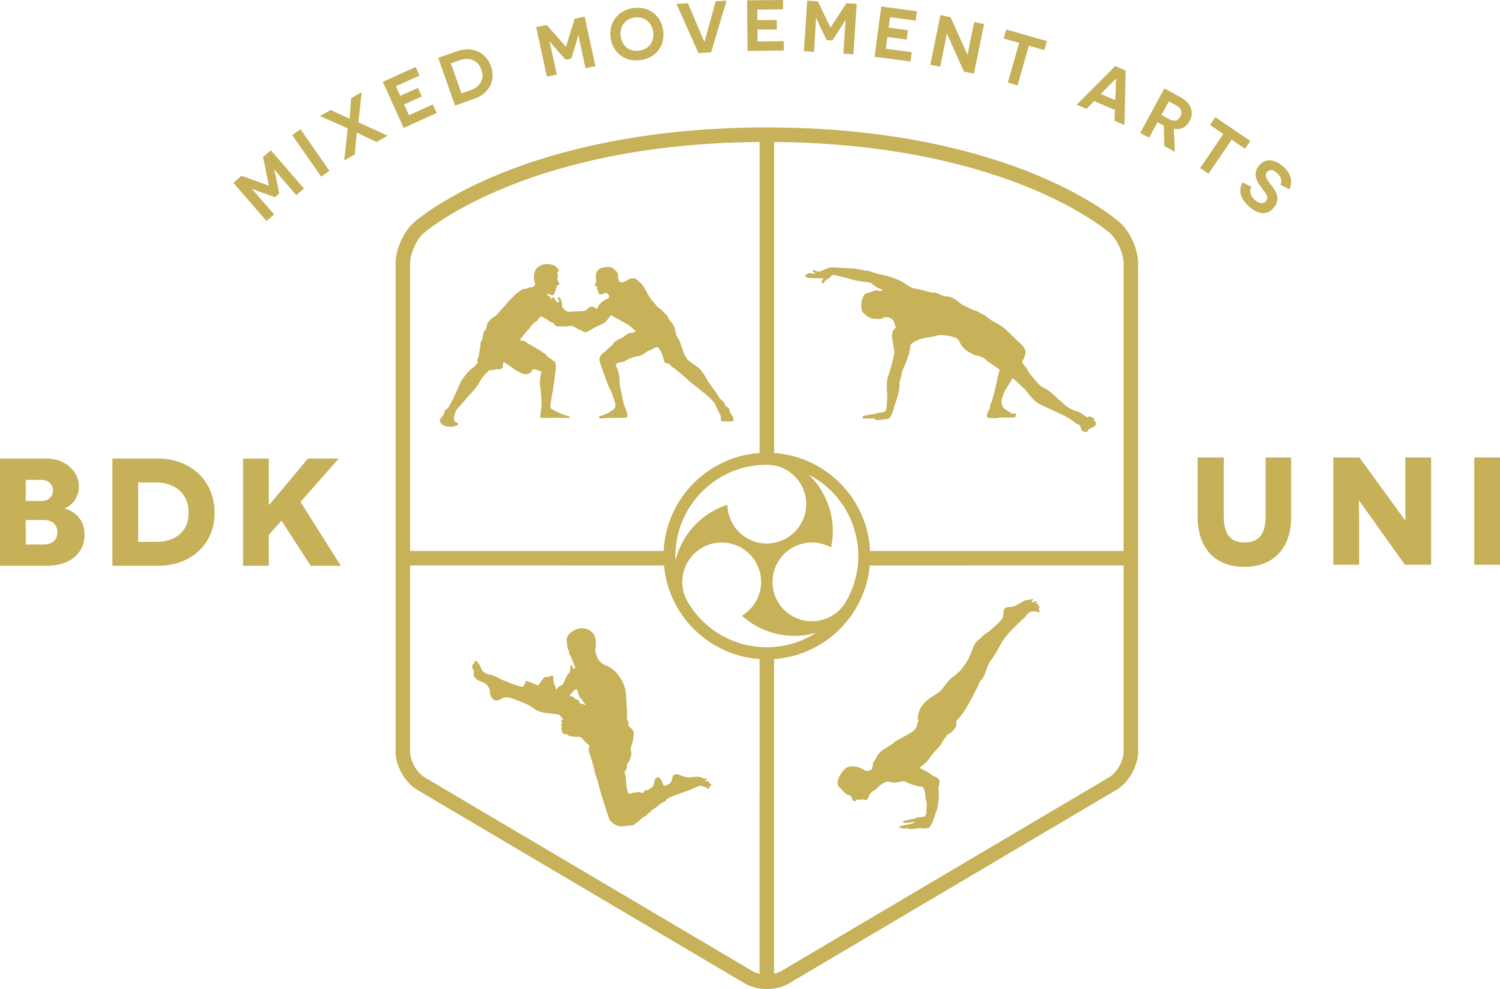 Budokon Mixed Movement Arts University by Cameron Shayne